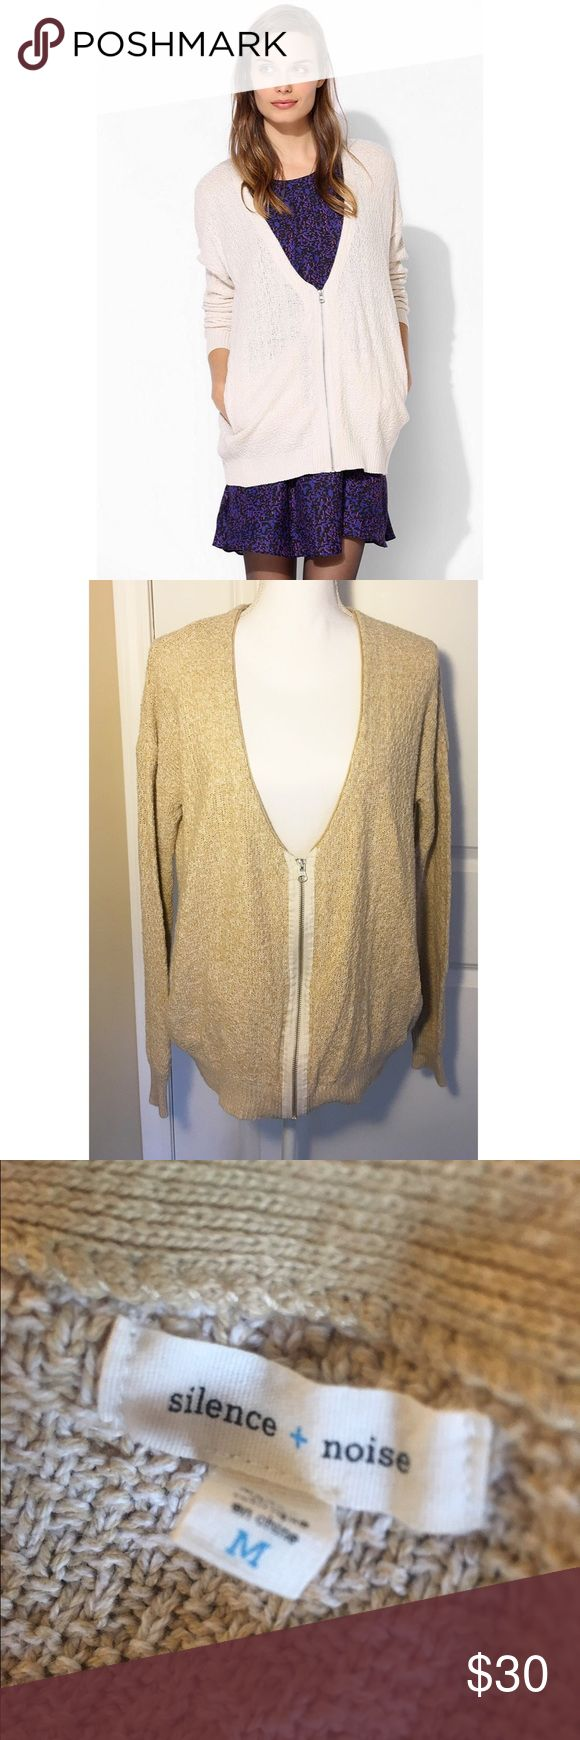 UO Silence + Noise beige zip-up cardigan sweater Sold out online. Picture is for fit. Mine is beige as shown in second picture. Size medium. From Urban Outfitters Urban Outfitters Sweaters Cardigans